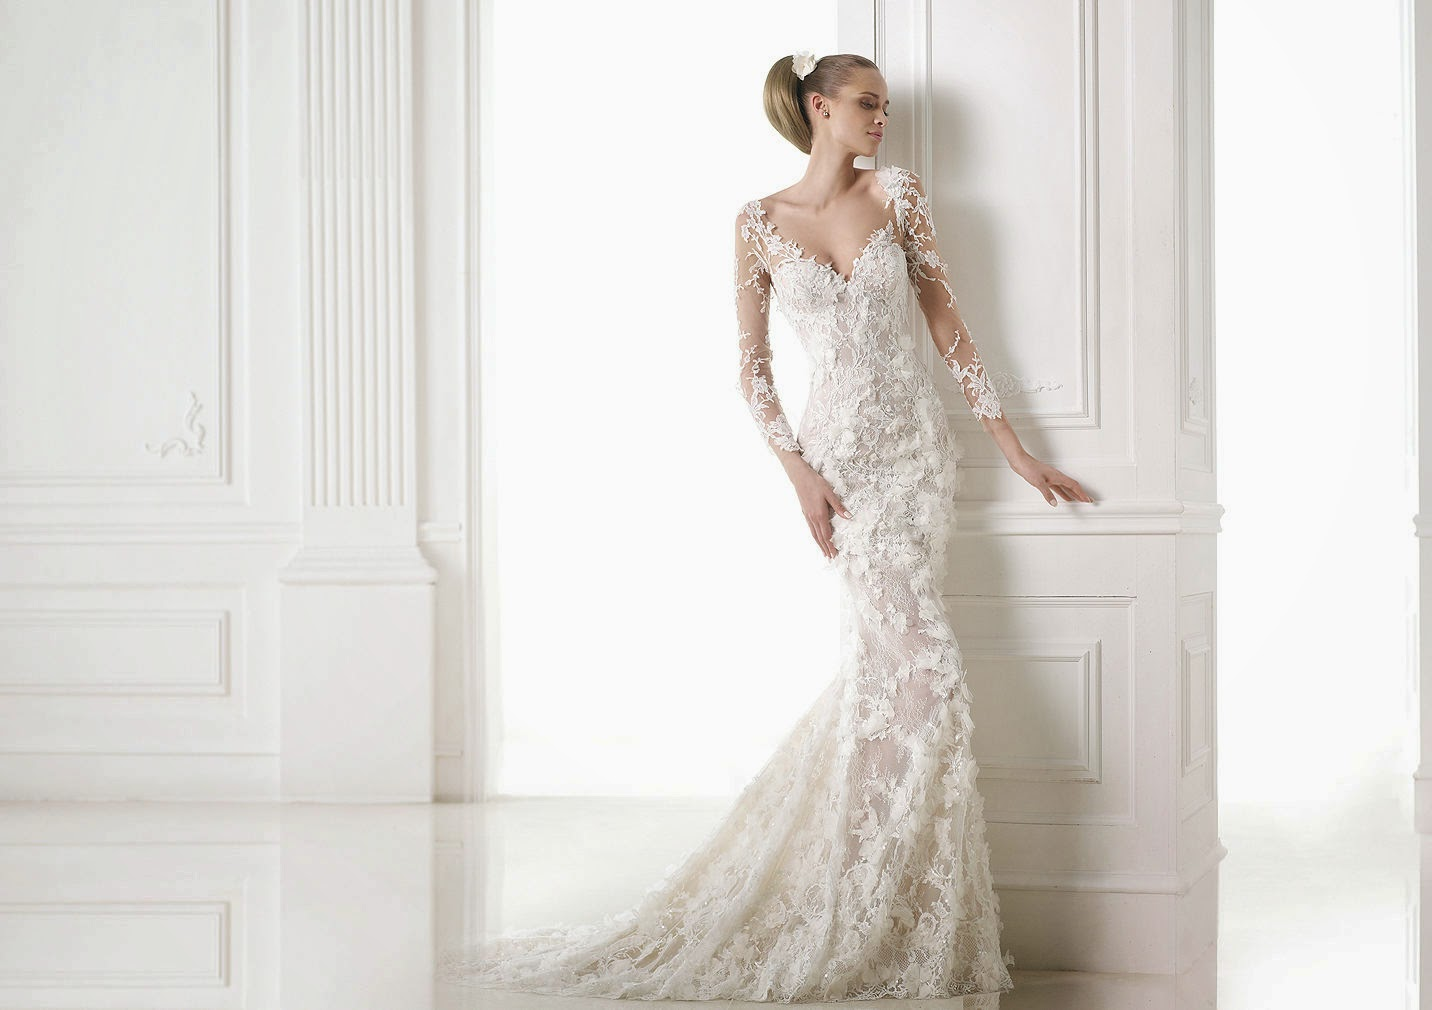 Mermaid Wedding Dresses, Pronovias 2015 Collection